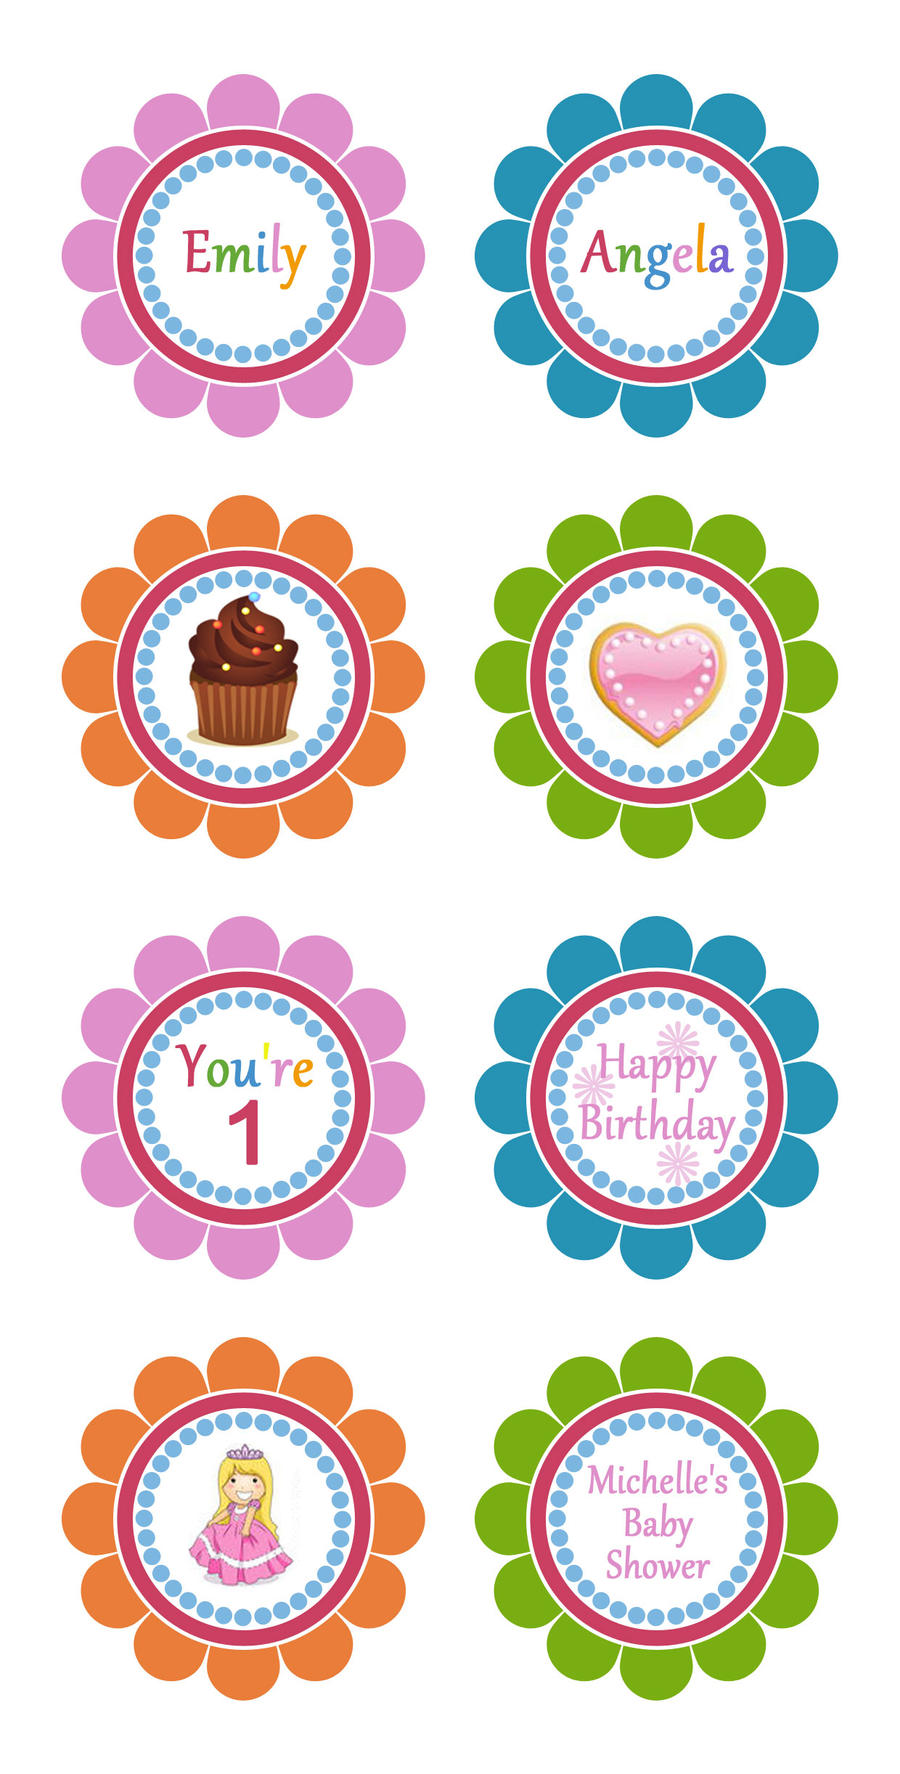 Cupcake Toppers Template by danbradster on DeviantArt